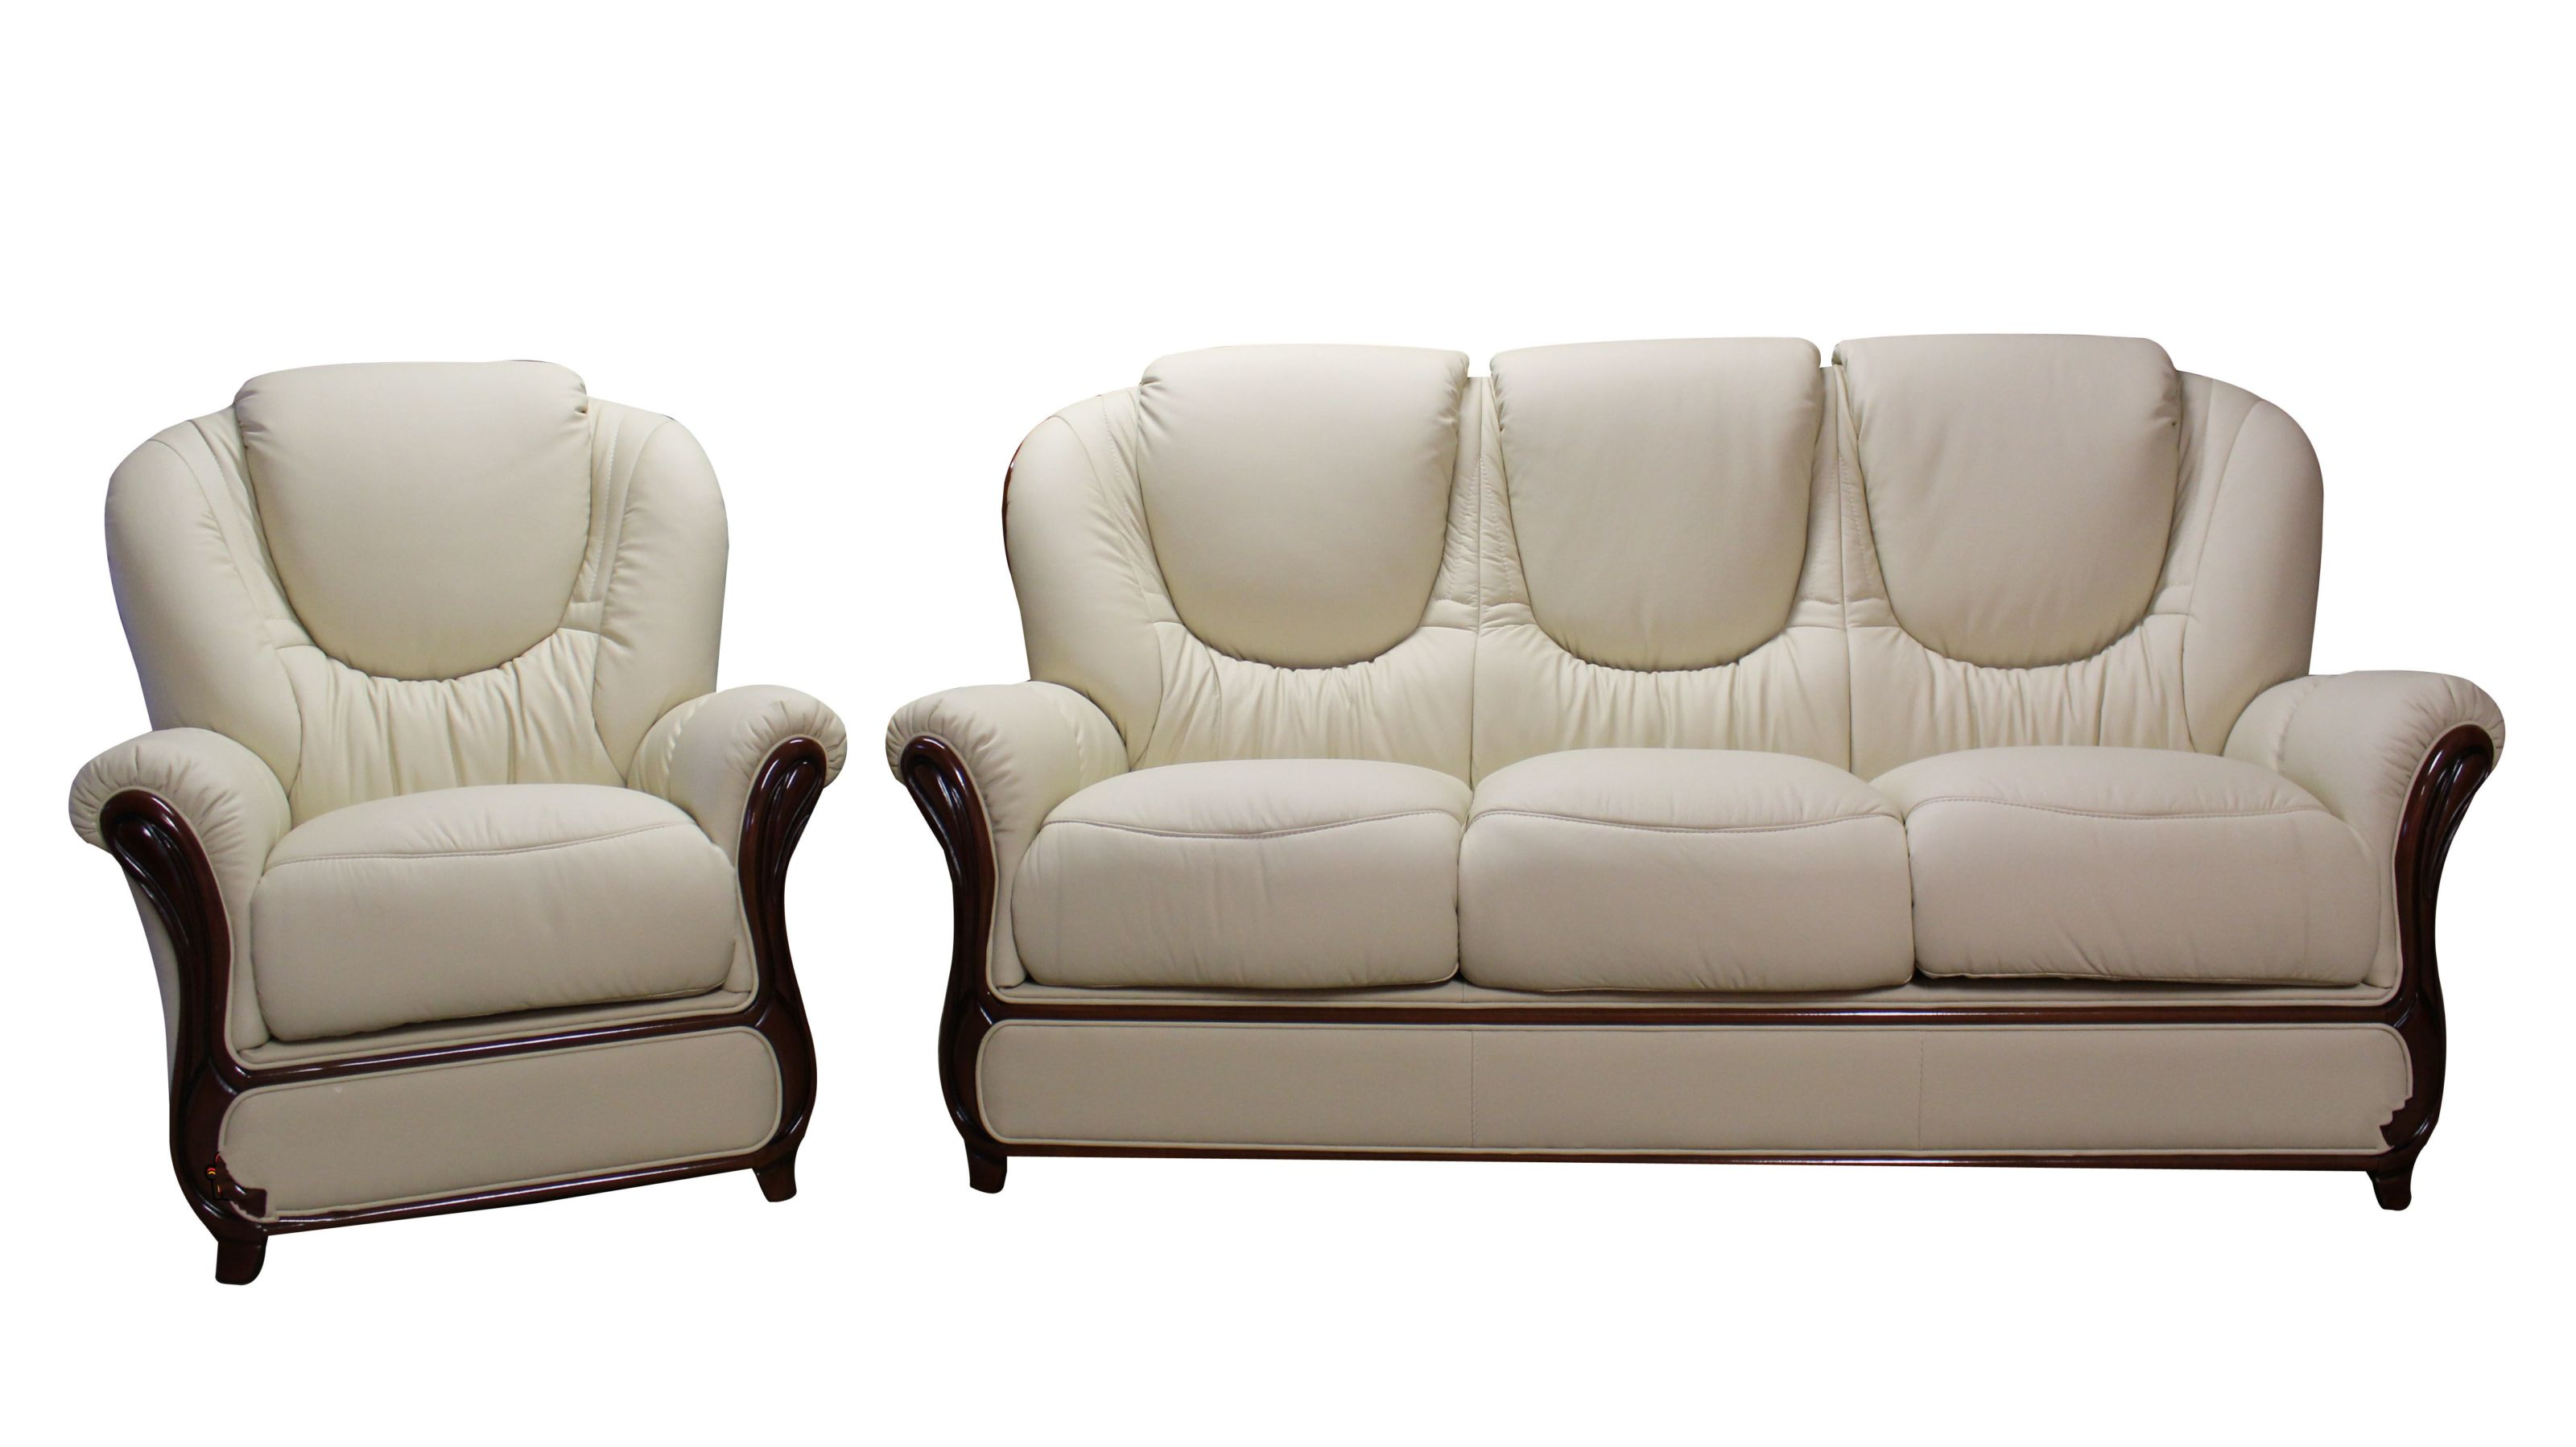 - Juliet 3 Seater + Armchair Genuine Italian Cream Leather Sofa Suite